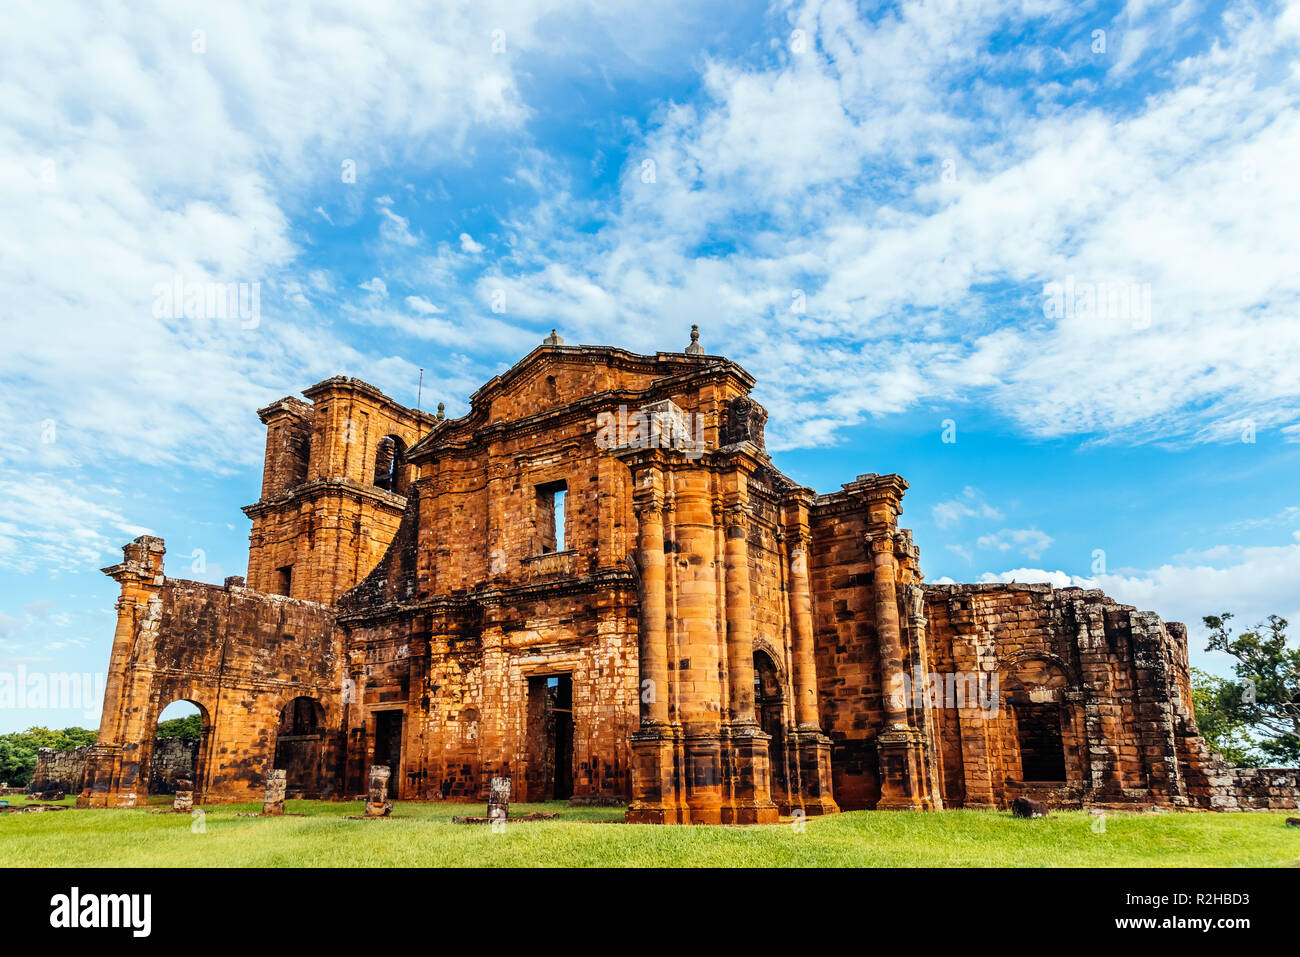 Ruins of the Cathedral of Saint Michael in the jesuit missions of the south of Brazil - Stock Image